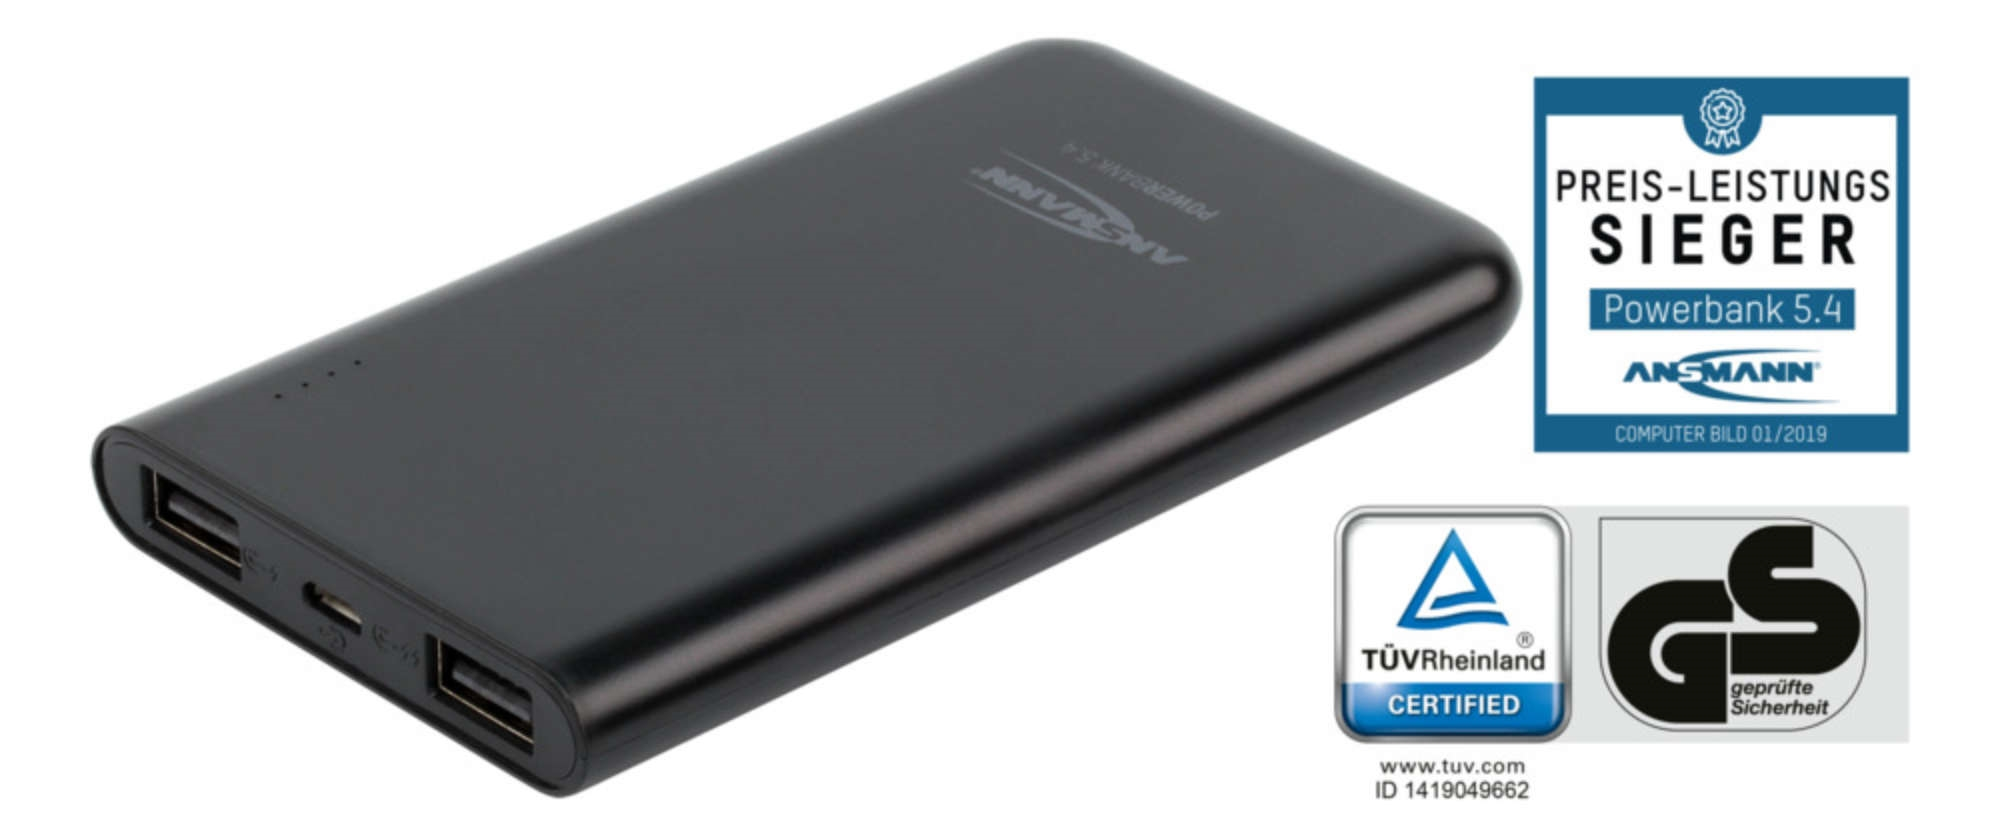 powerbank Powerbank 5.4